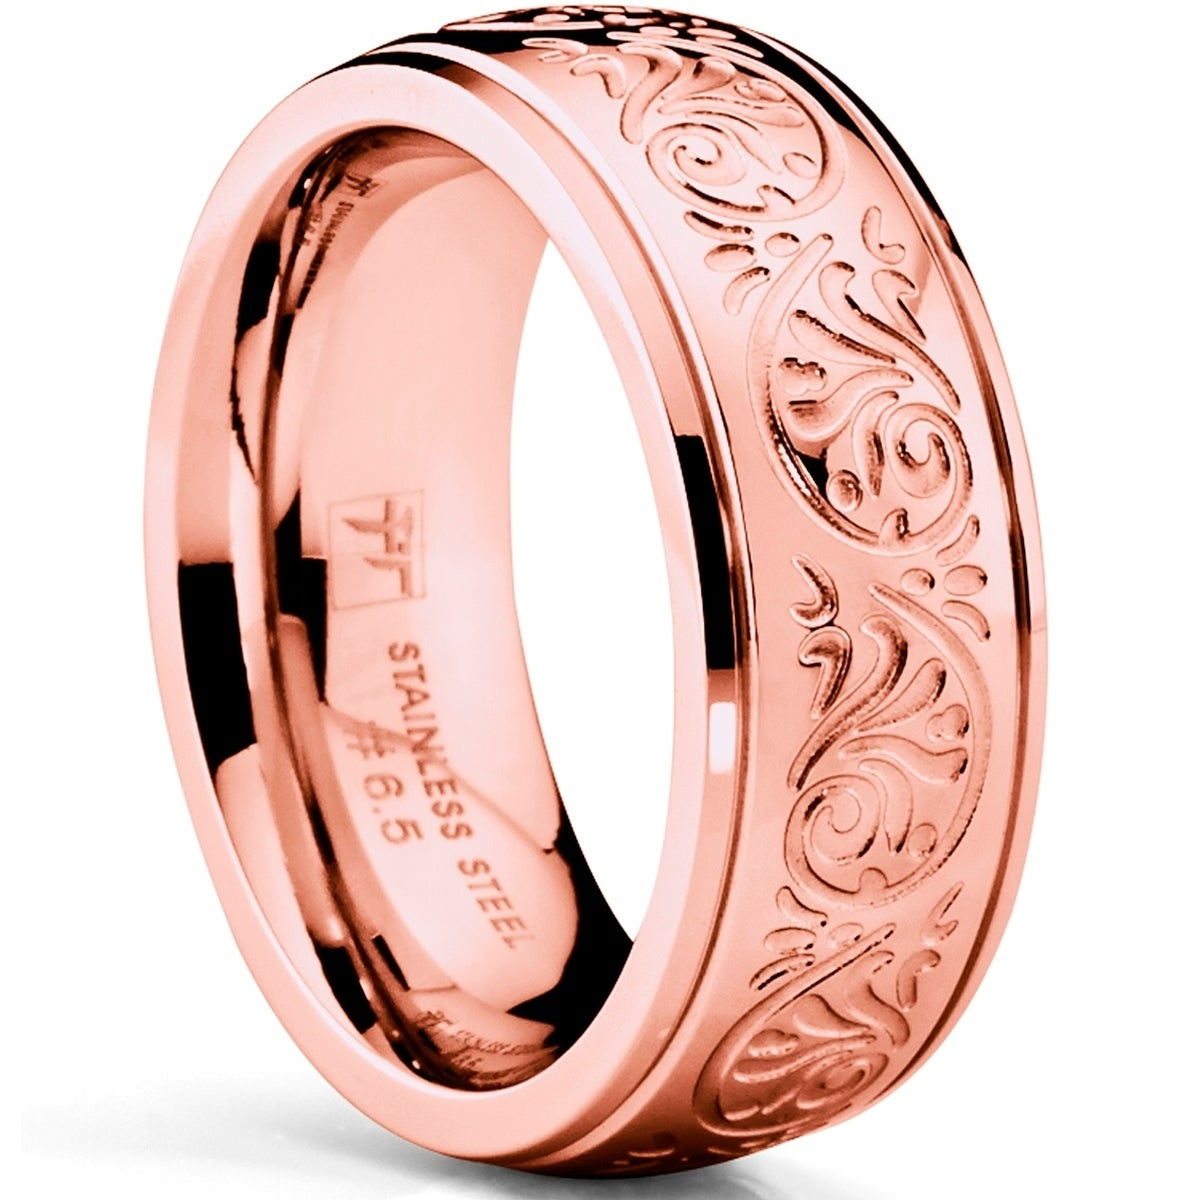 Stainless Steel Wedding Rings | Find Great Jewelry Deals Shopping at ...